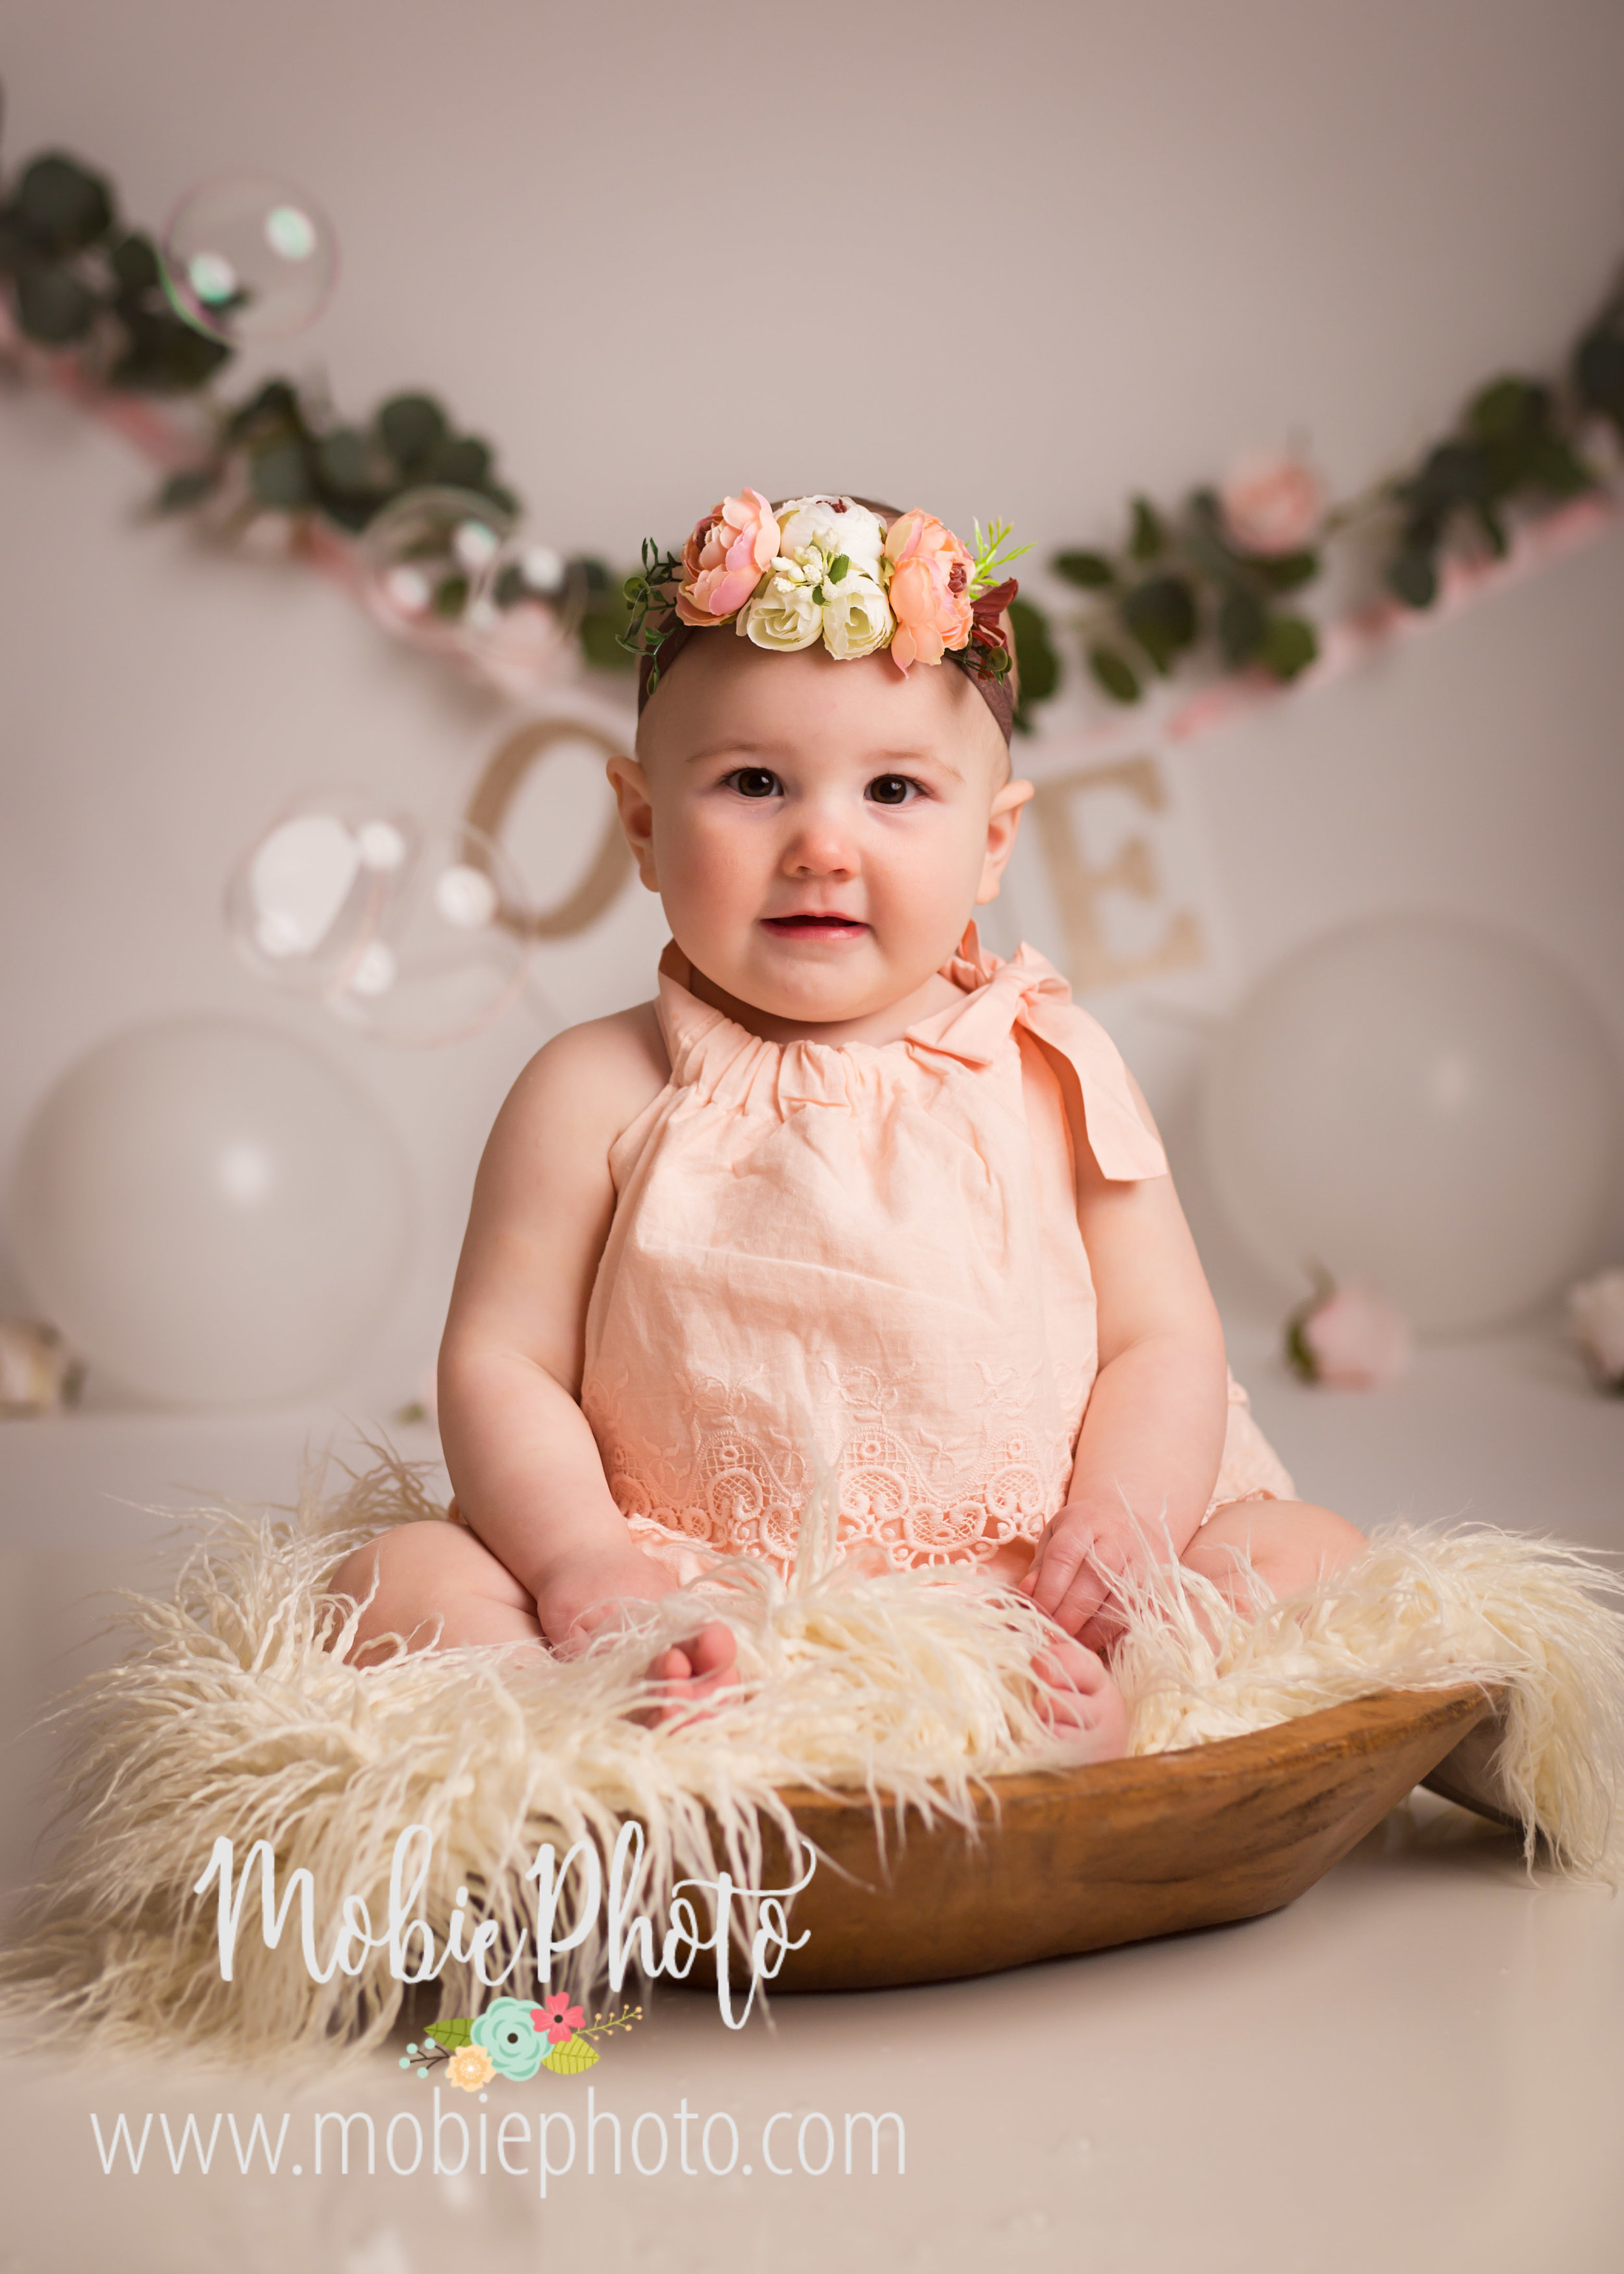 One Year Old Birthday Pictures with Cake Smash - Mobie Photo - Utah Baby Photographer